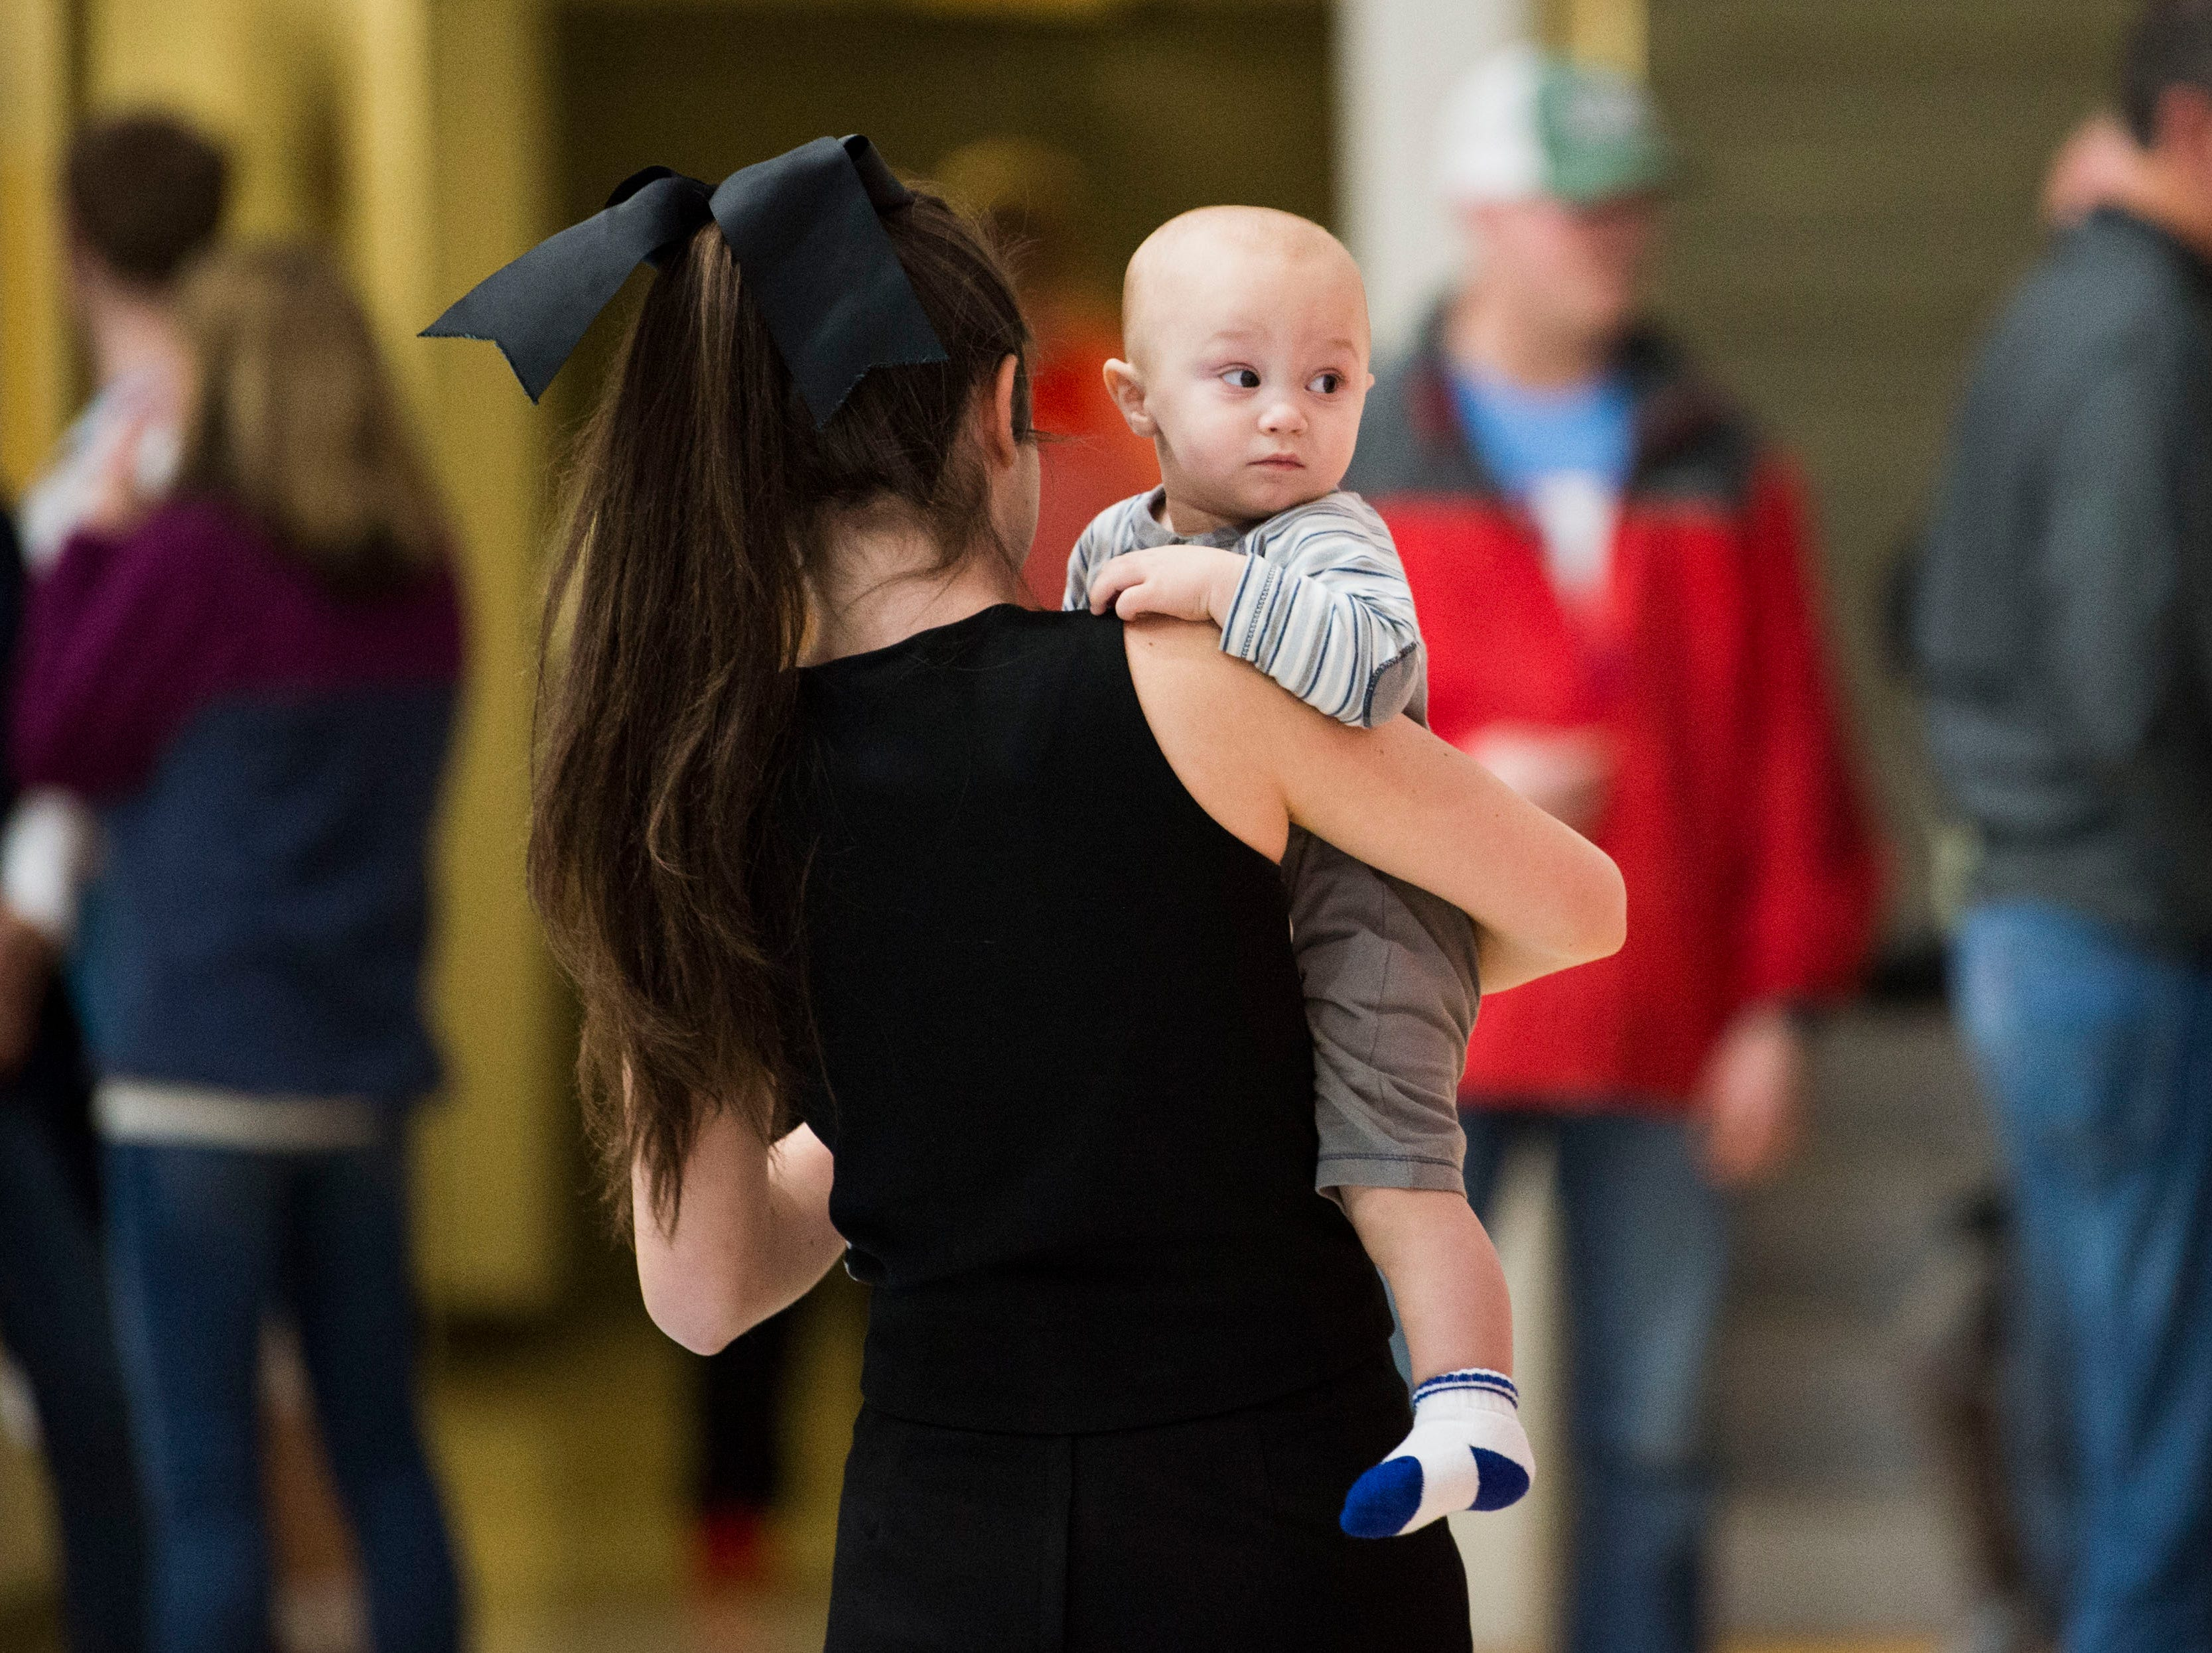 Maryville cheerleader Grace Raper carries her little brother Bryce Trentham during halftime of a high school basketball game between Maryville and Heritage at Heritage Friday, Jan. 4, 2019. Both Maryville boys and girls teams beat Heritage.